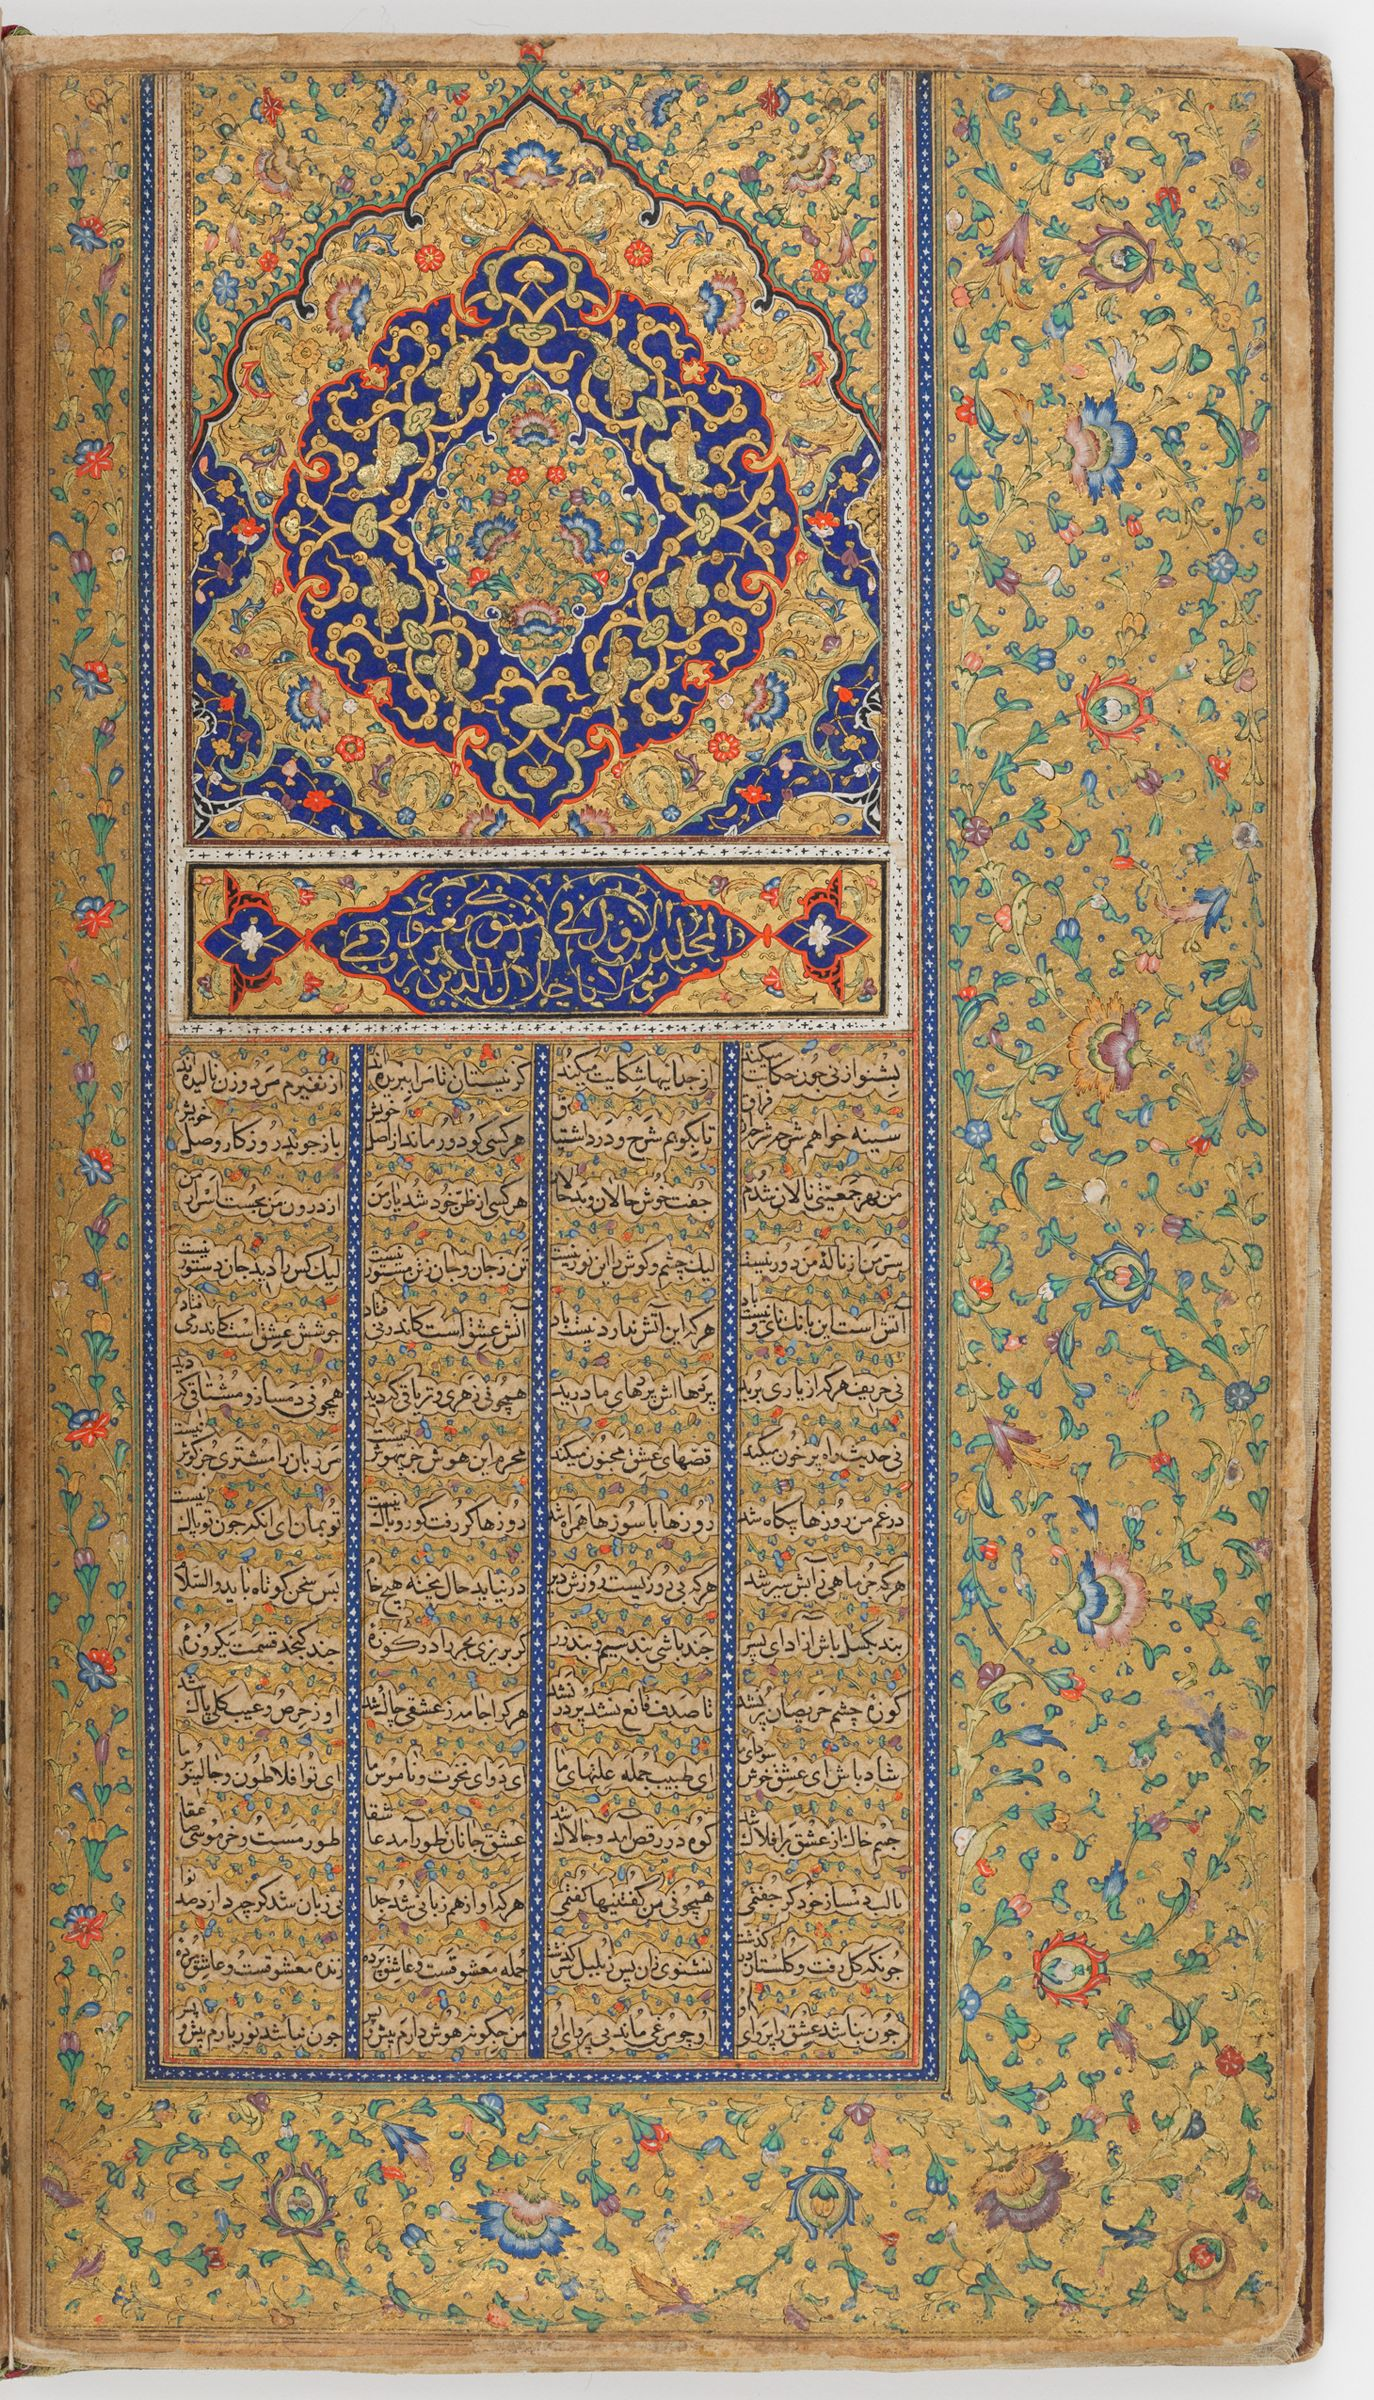 Sarlawh Of The Double-Page Illuminated Frontispiece; Ownership Notes And Seals (Notes And Seals Recto; Sarlawh Verso Of Folio 3), Folio From A Manuscript Of The Mathnavi Ma'navi By Maulana Jalal Al-Din Rumi